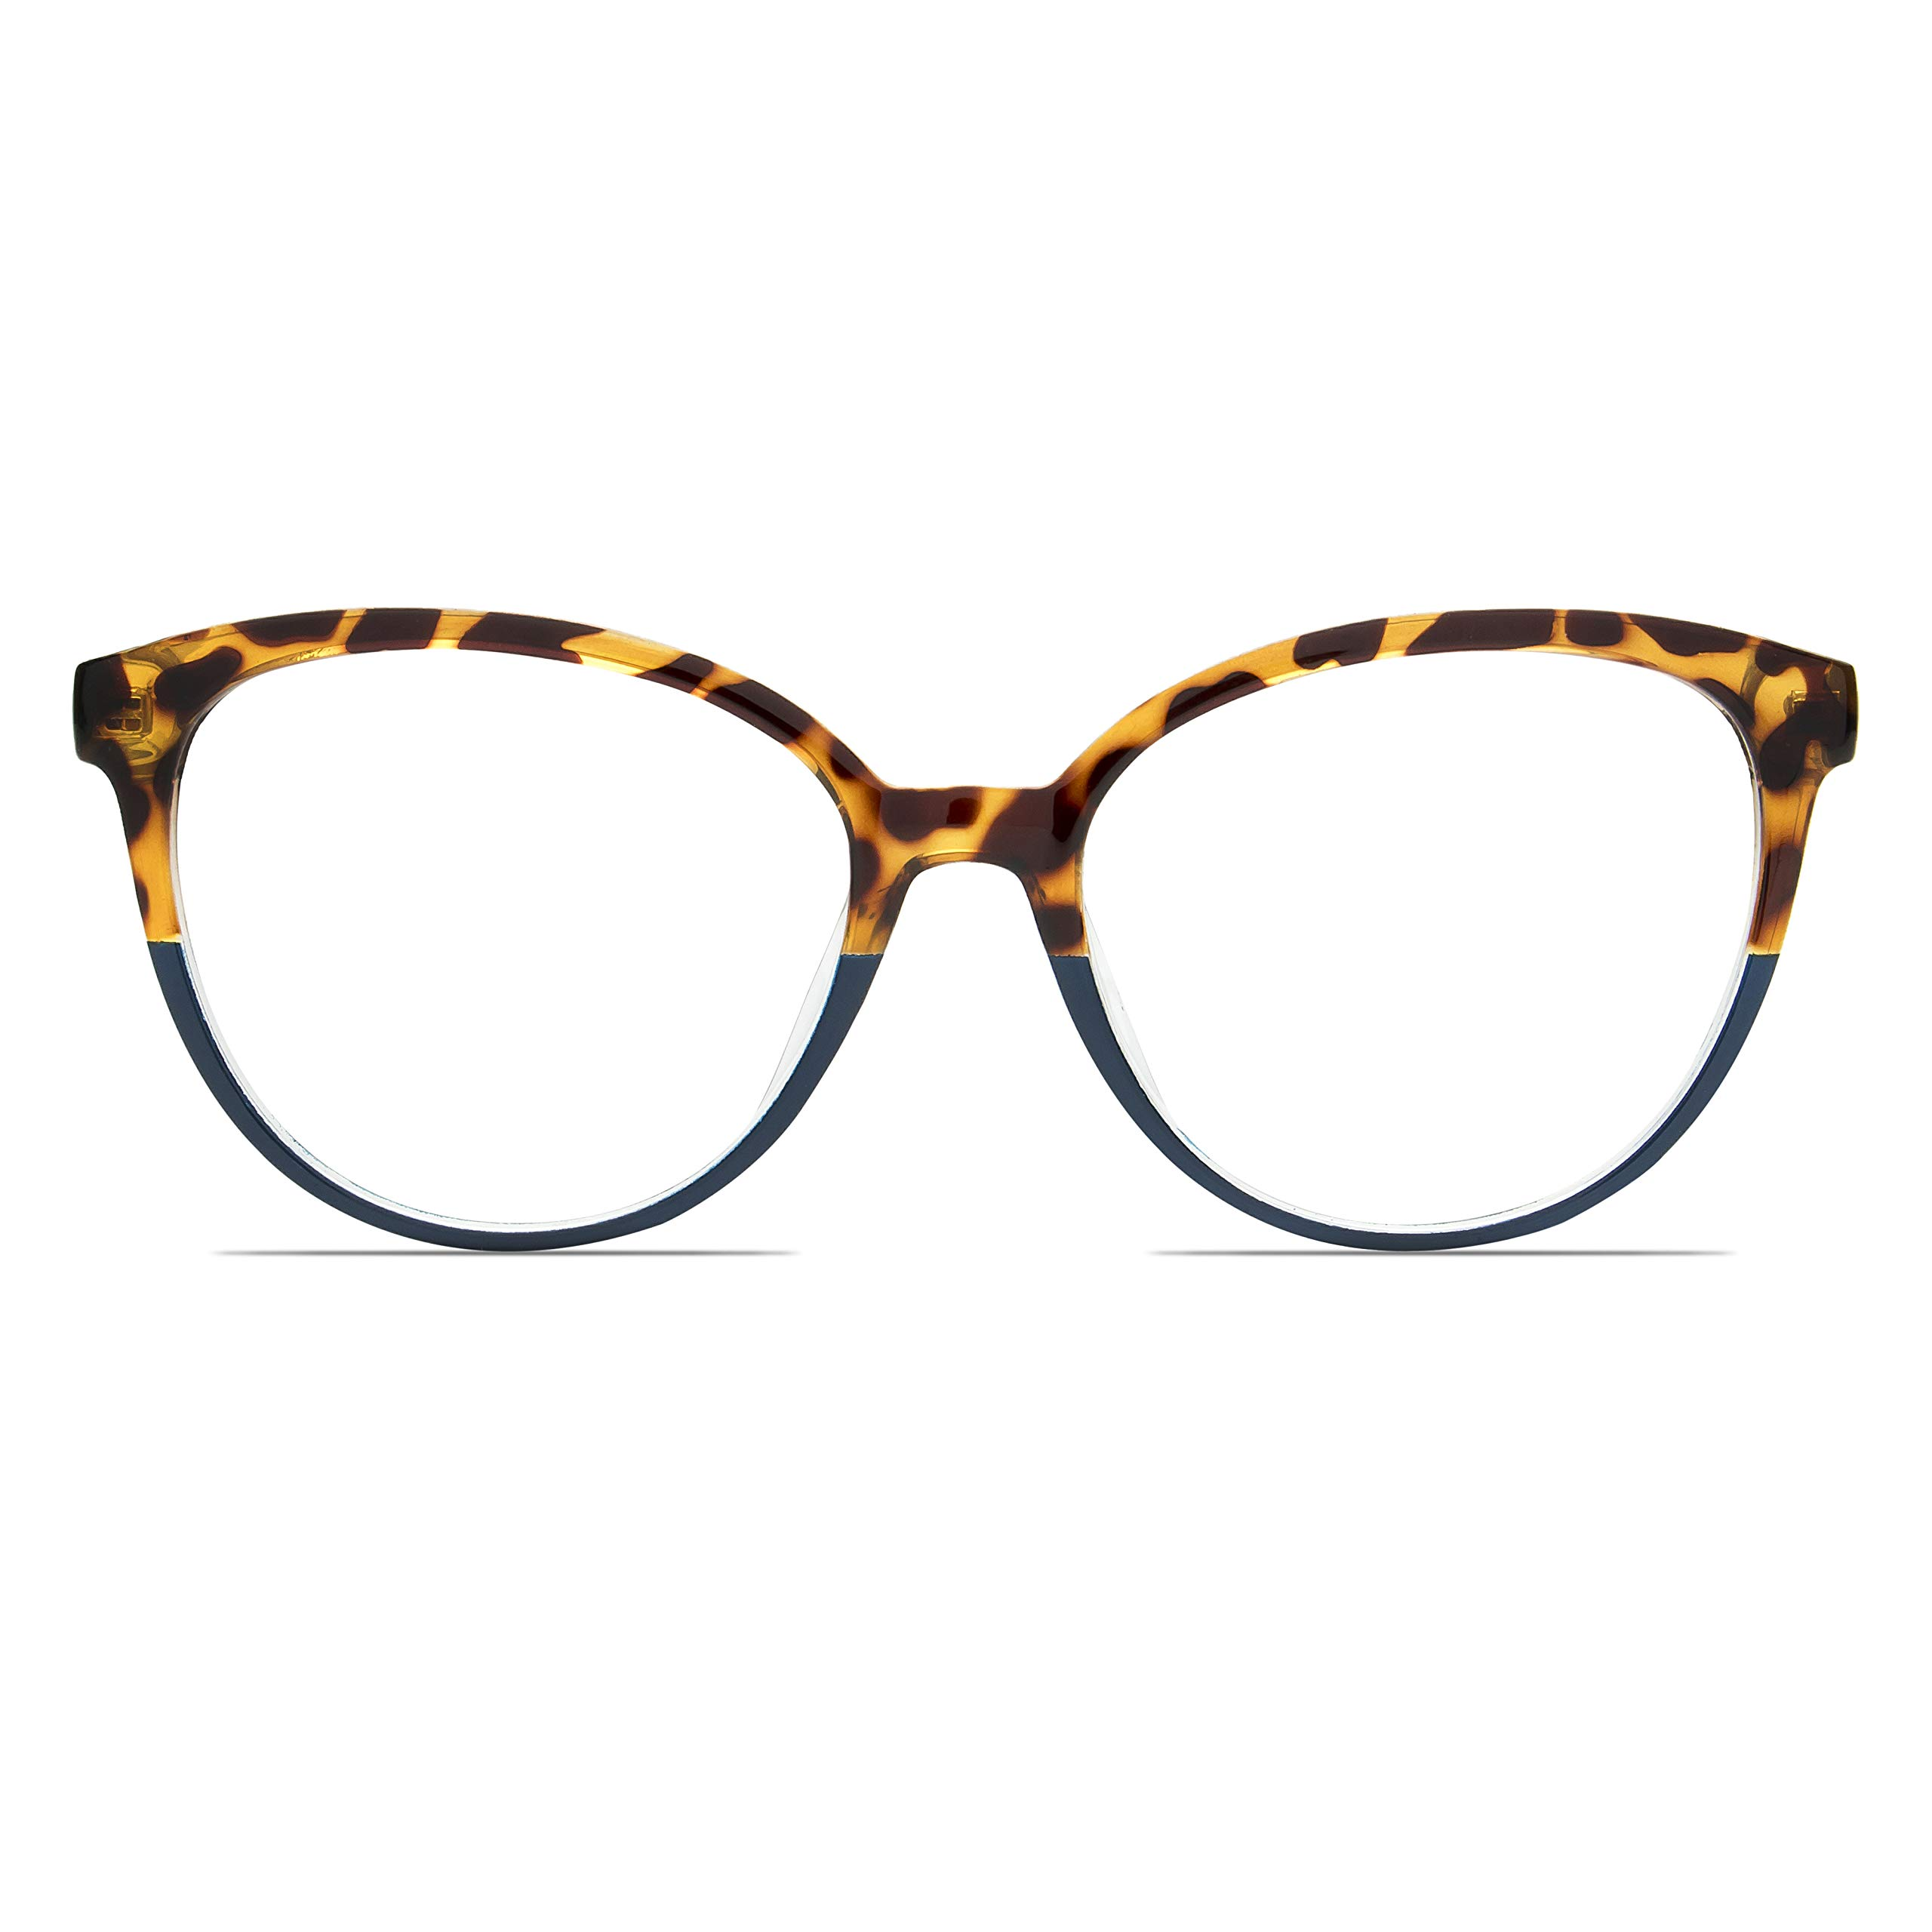 Premium Blue light blocking glasses - Cateye Acetate Frame equipped with spring hinges and high grade blue tech lenses- Anti Eyestrain by WealthyShades